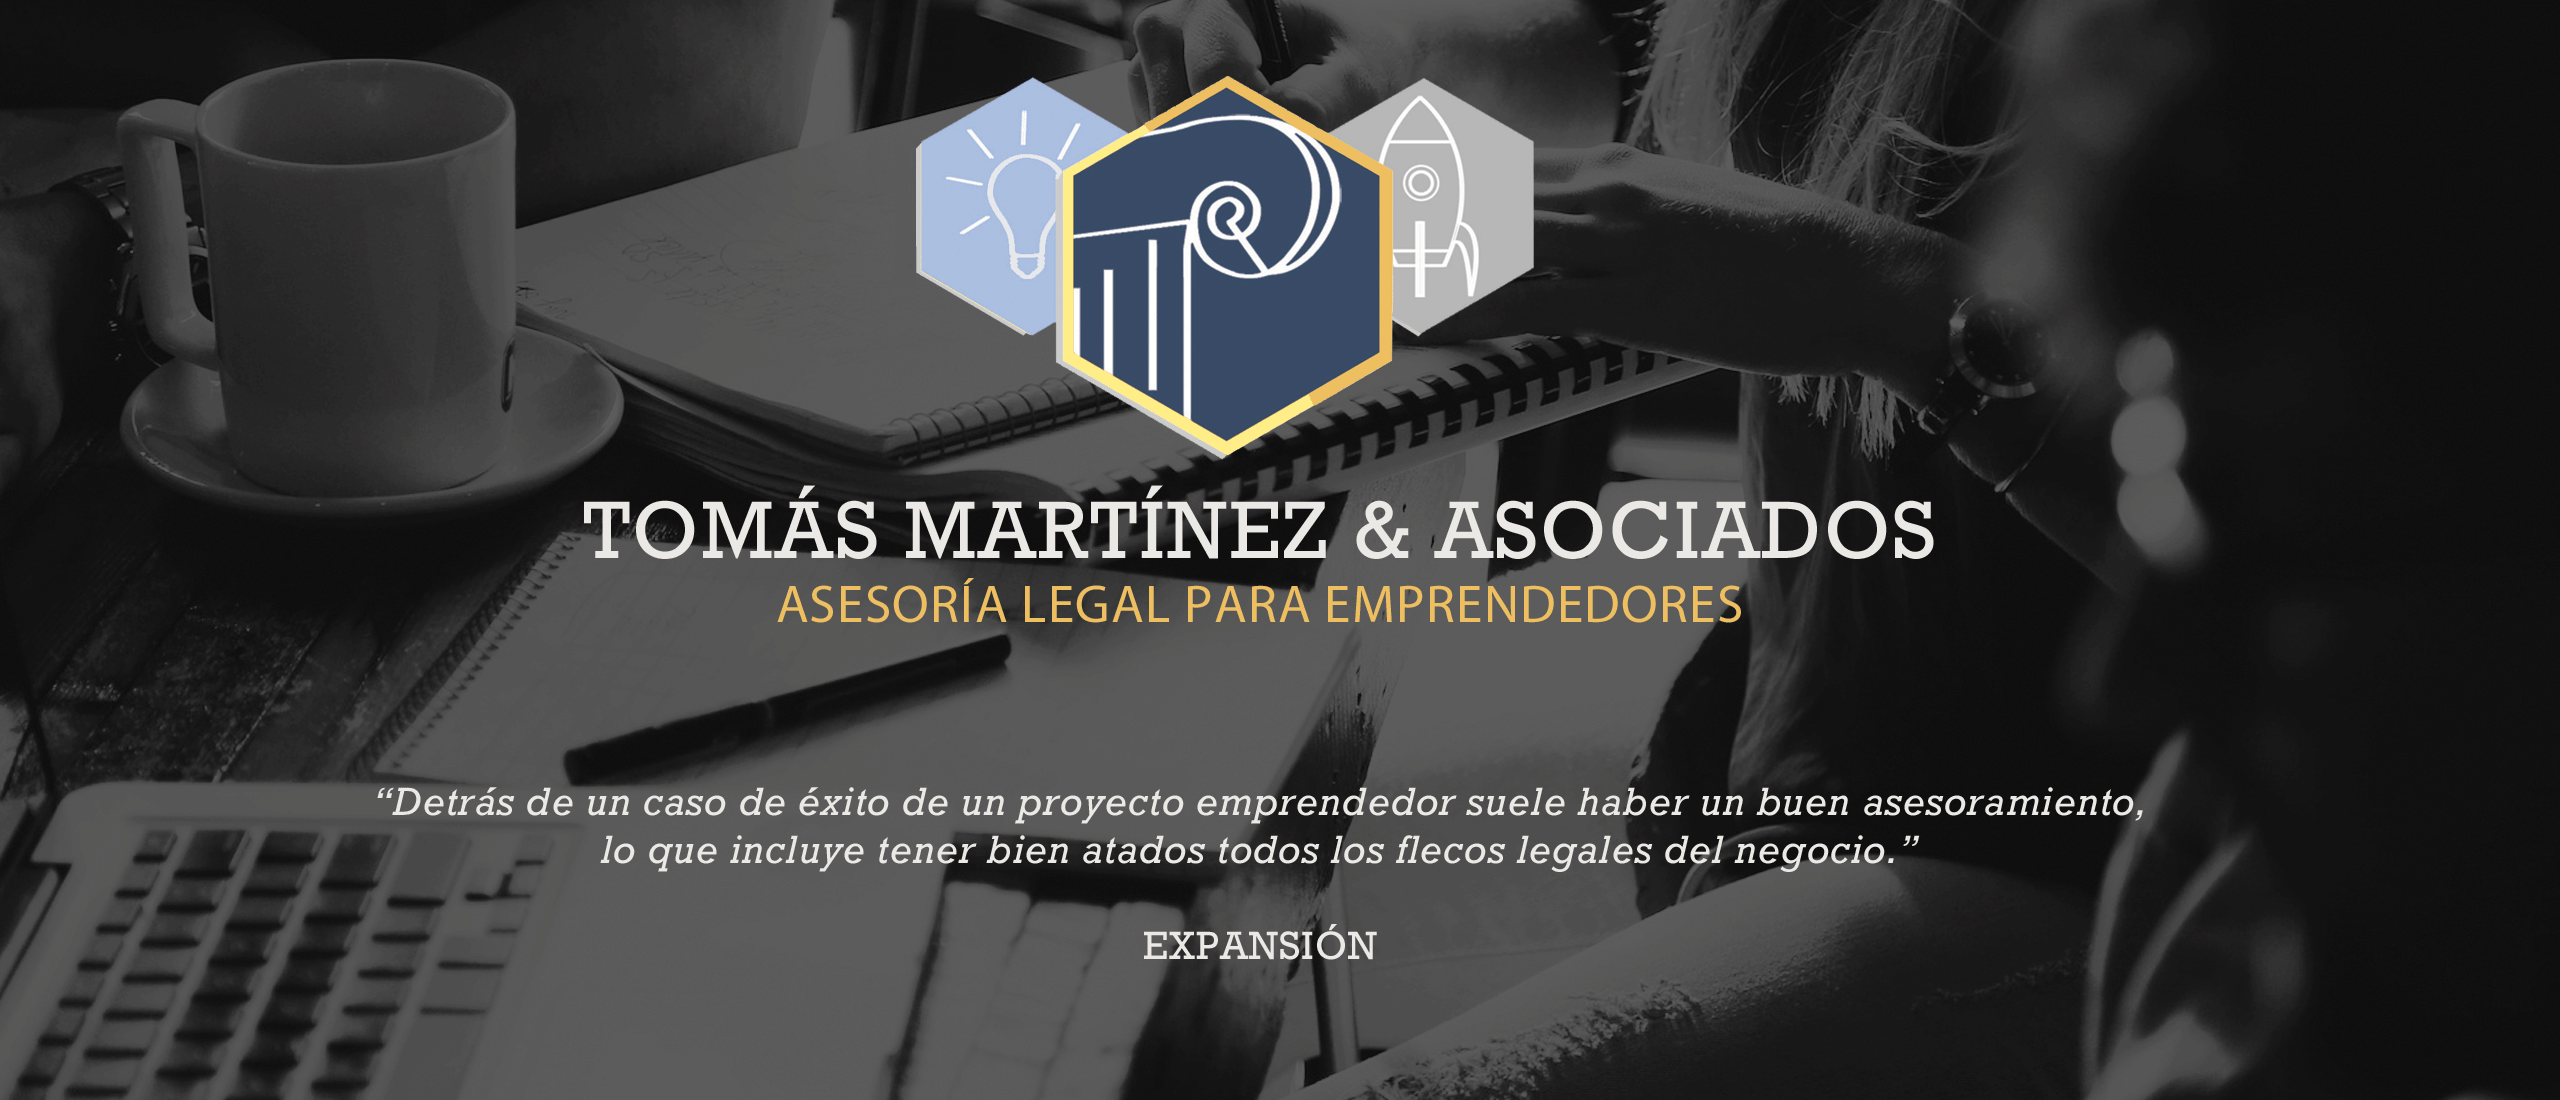 asesoria-legal-emprendedores-madrid